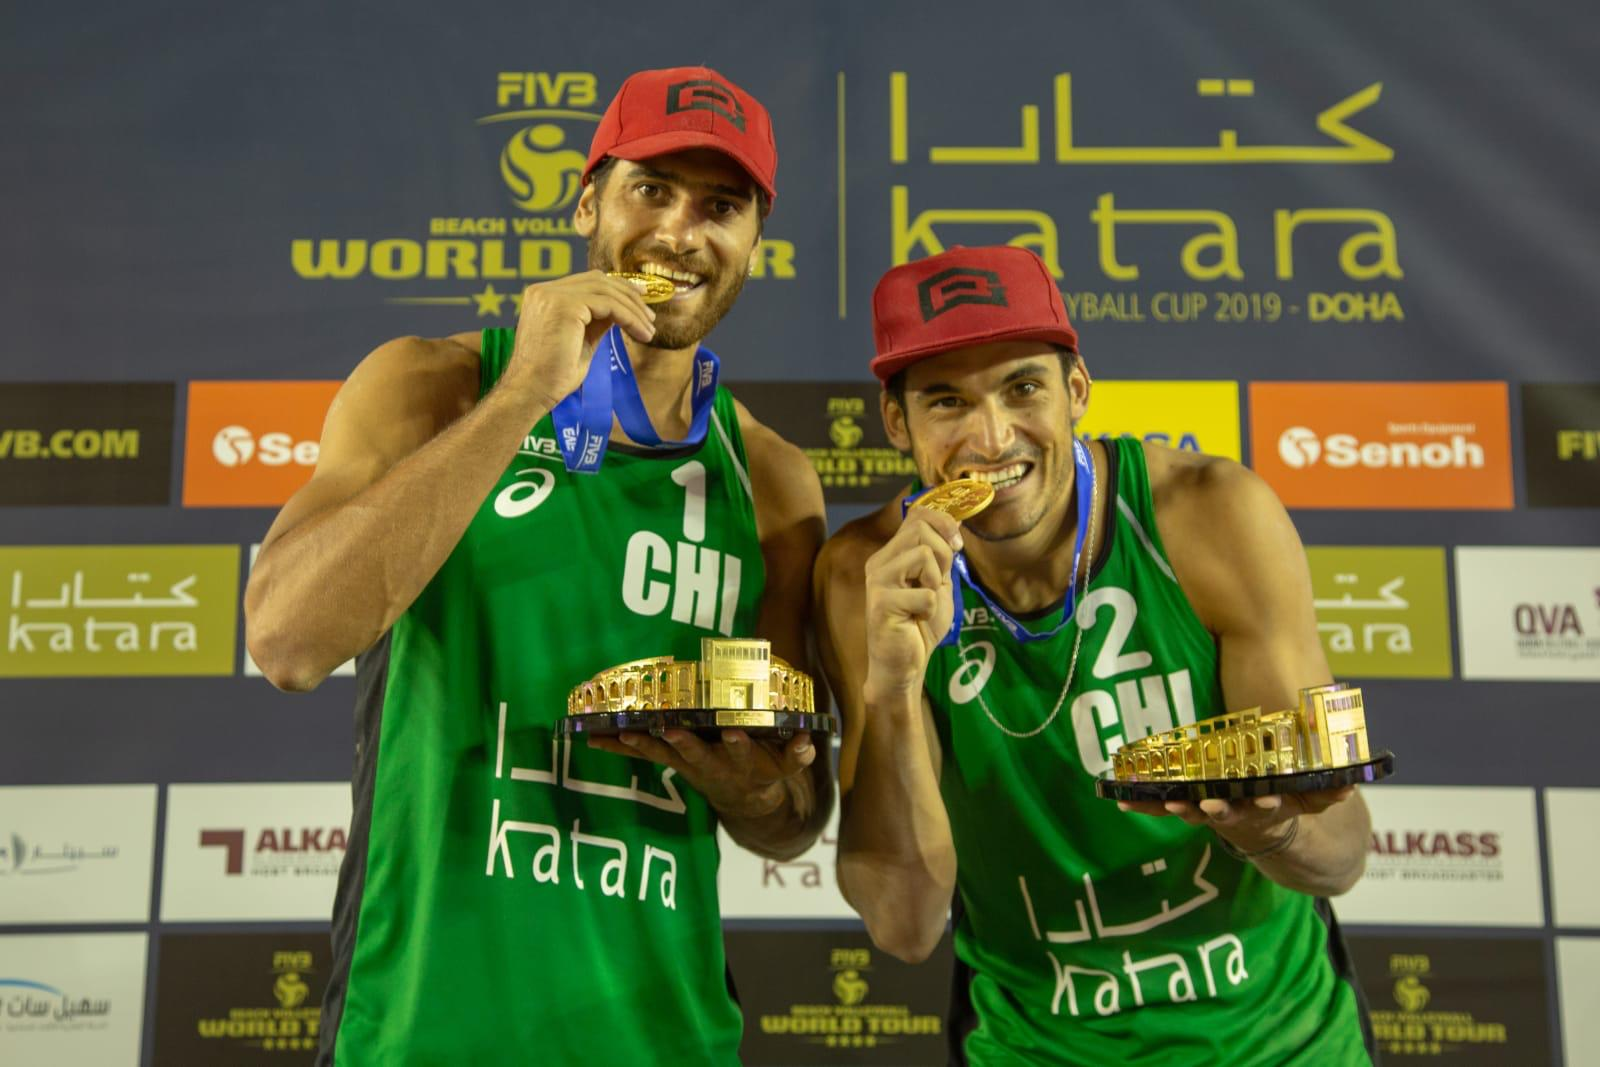 GRIMALT AND GRIMALT MAKE IT TWO GOLD IN TWO WEEKS WITH DOHA VICTORY